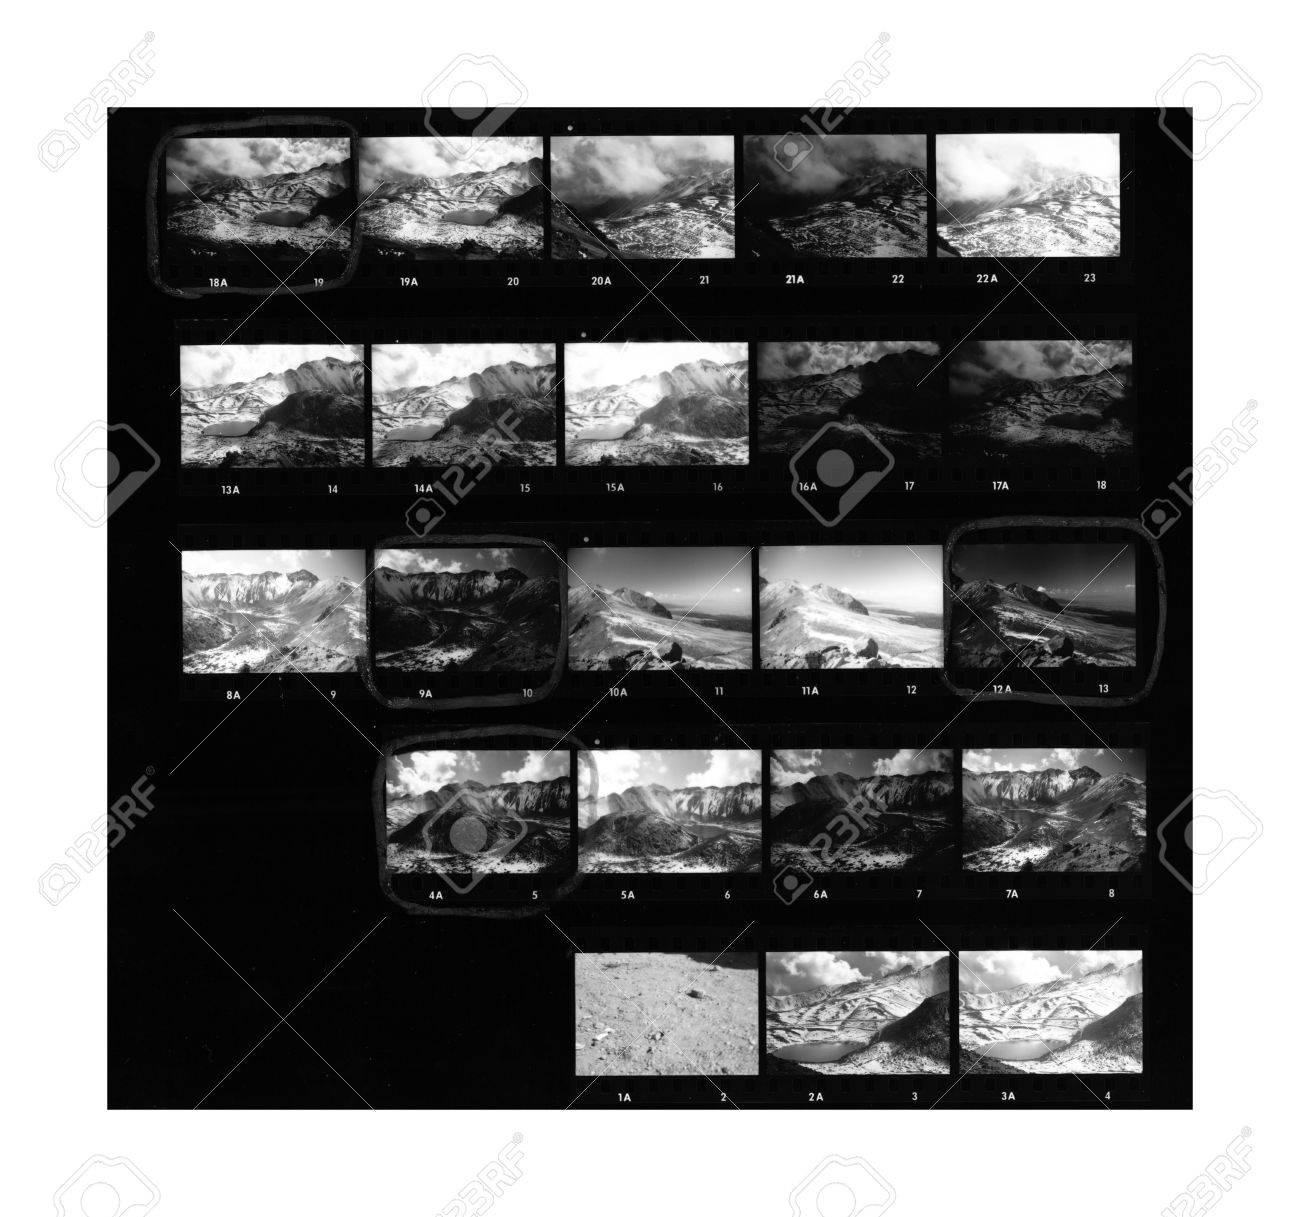 Contact sheet of old black and white film negatives on traditional photo paper stock photo